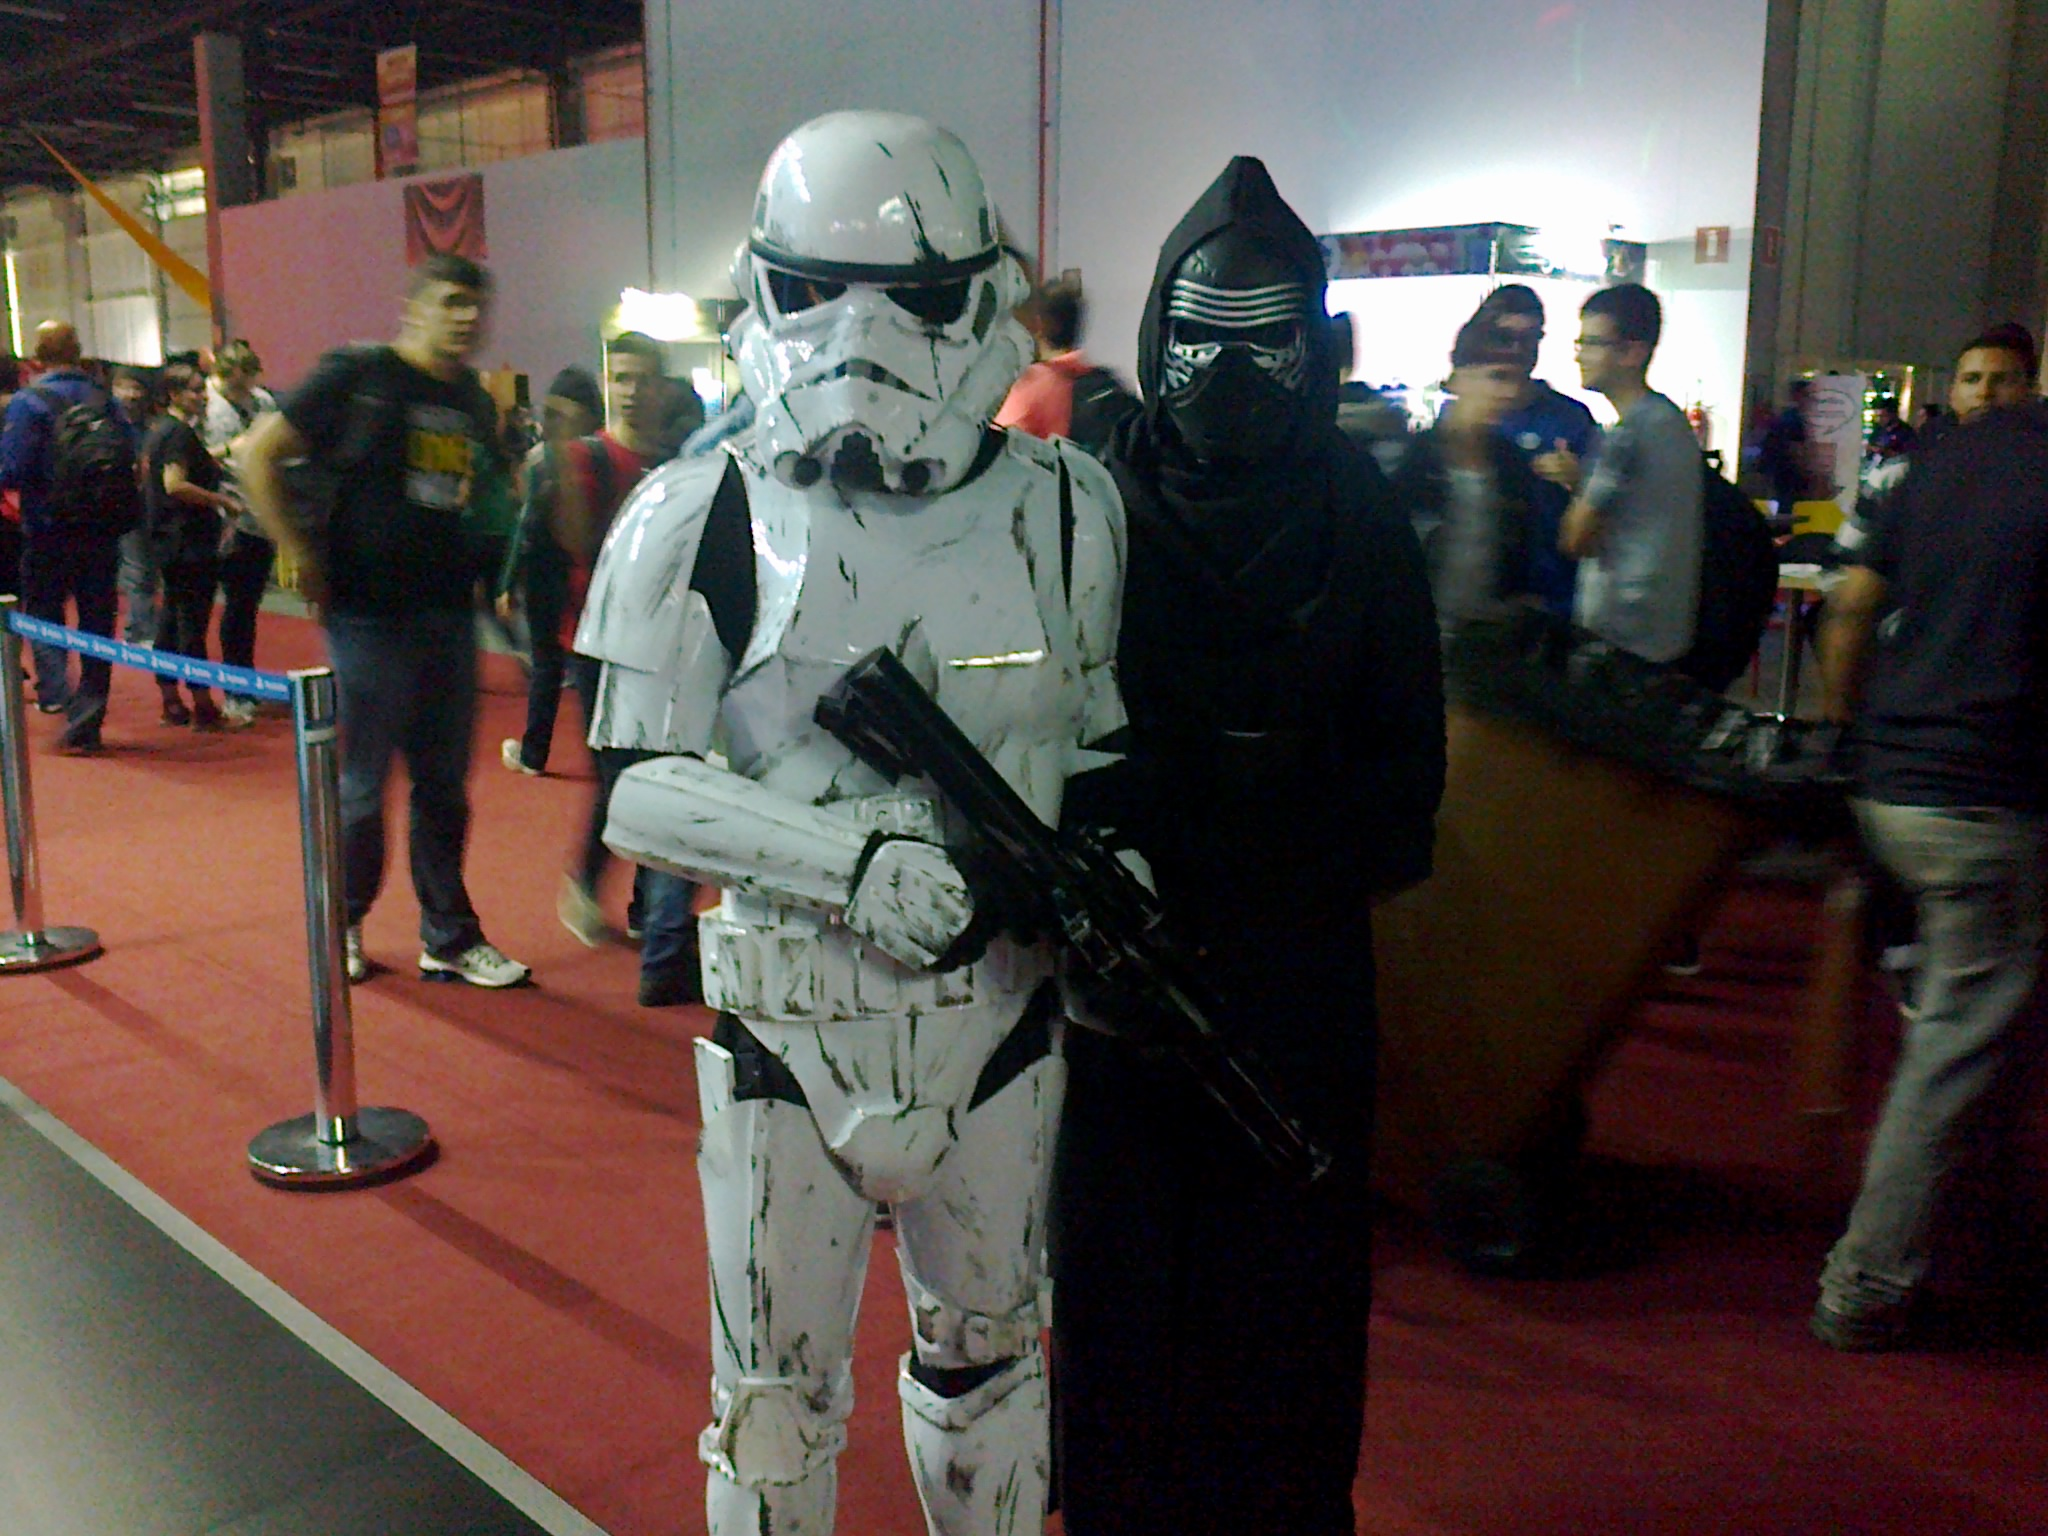 Cosplayers vestidos como Stormtrooper e Kylo Ren, personagens de Star Wars.